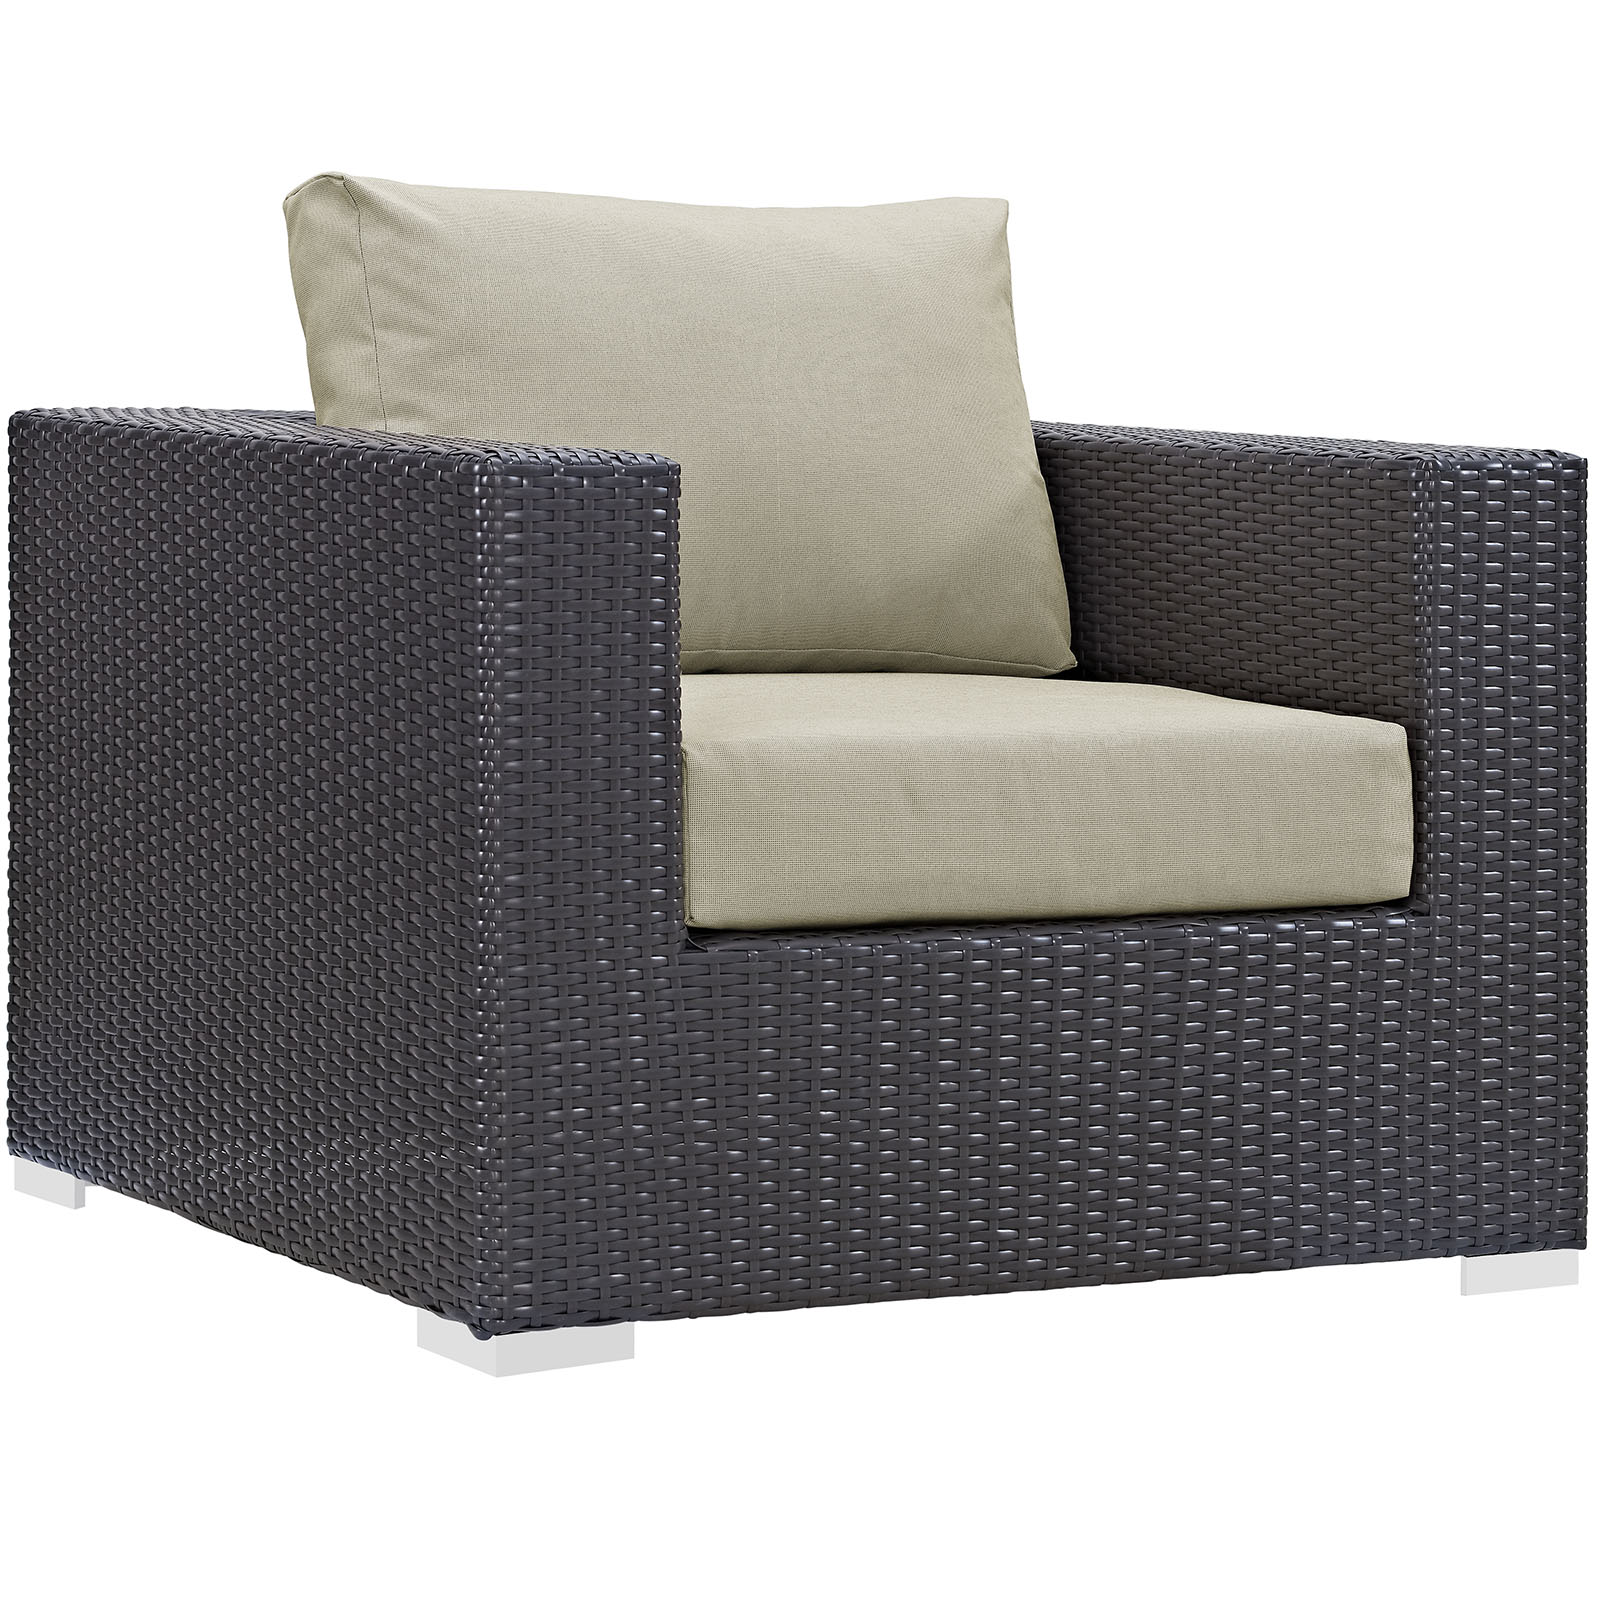 Loungemobel Rattan Amazon Beige Optik Rattan Lounge Beige